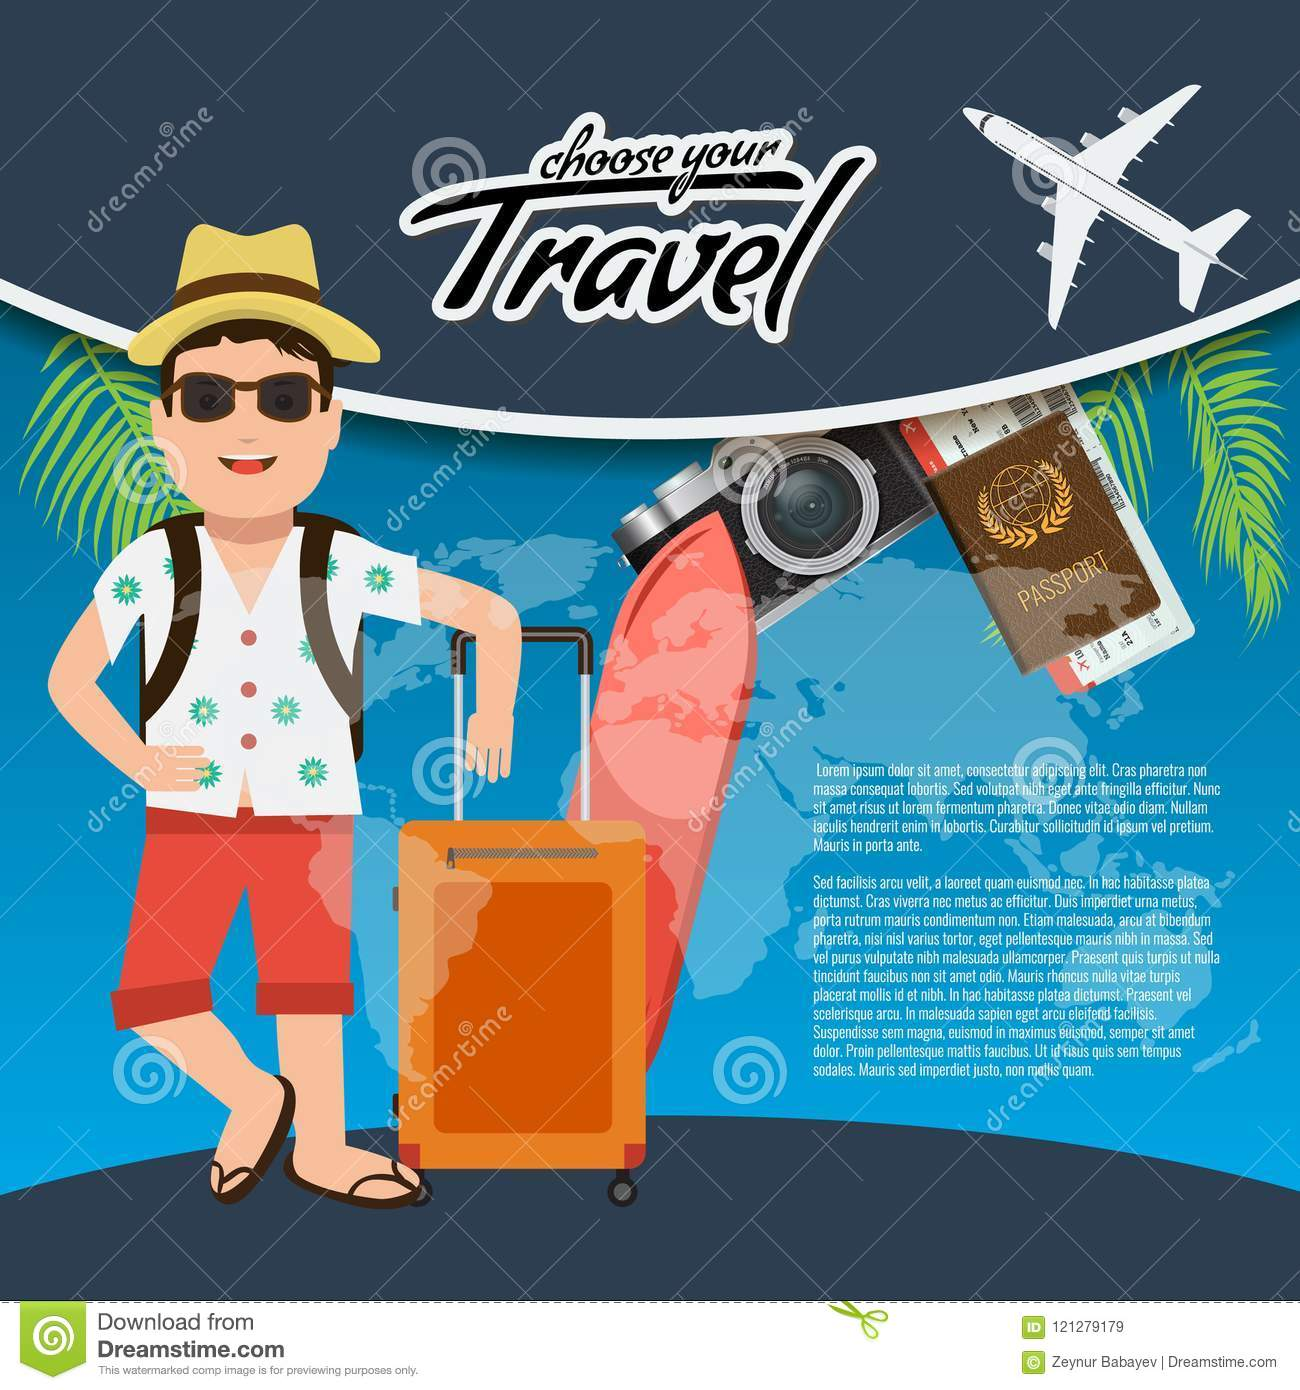 3d realistic travel and tour creative poster design with realistic 3d realistic travel and tour creative poster design with realistic airplane mascot man character gumiabroncs Images